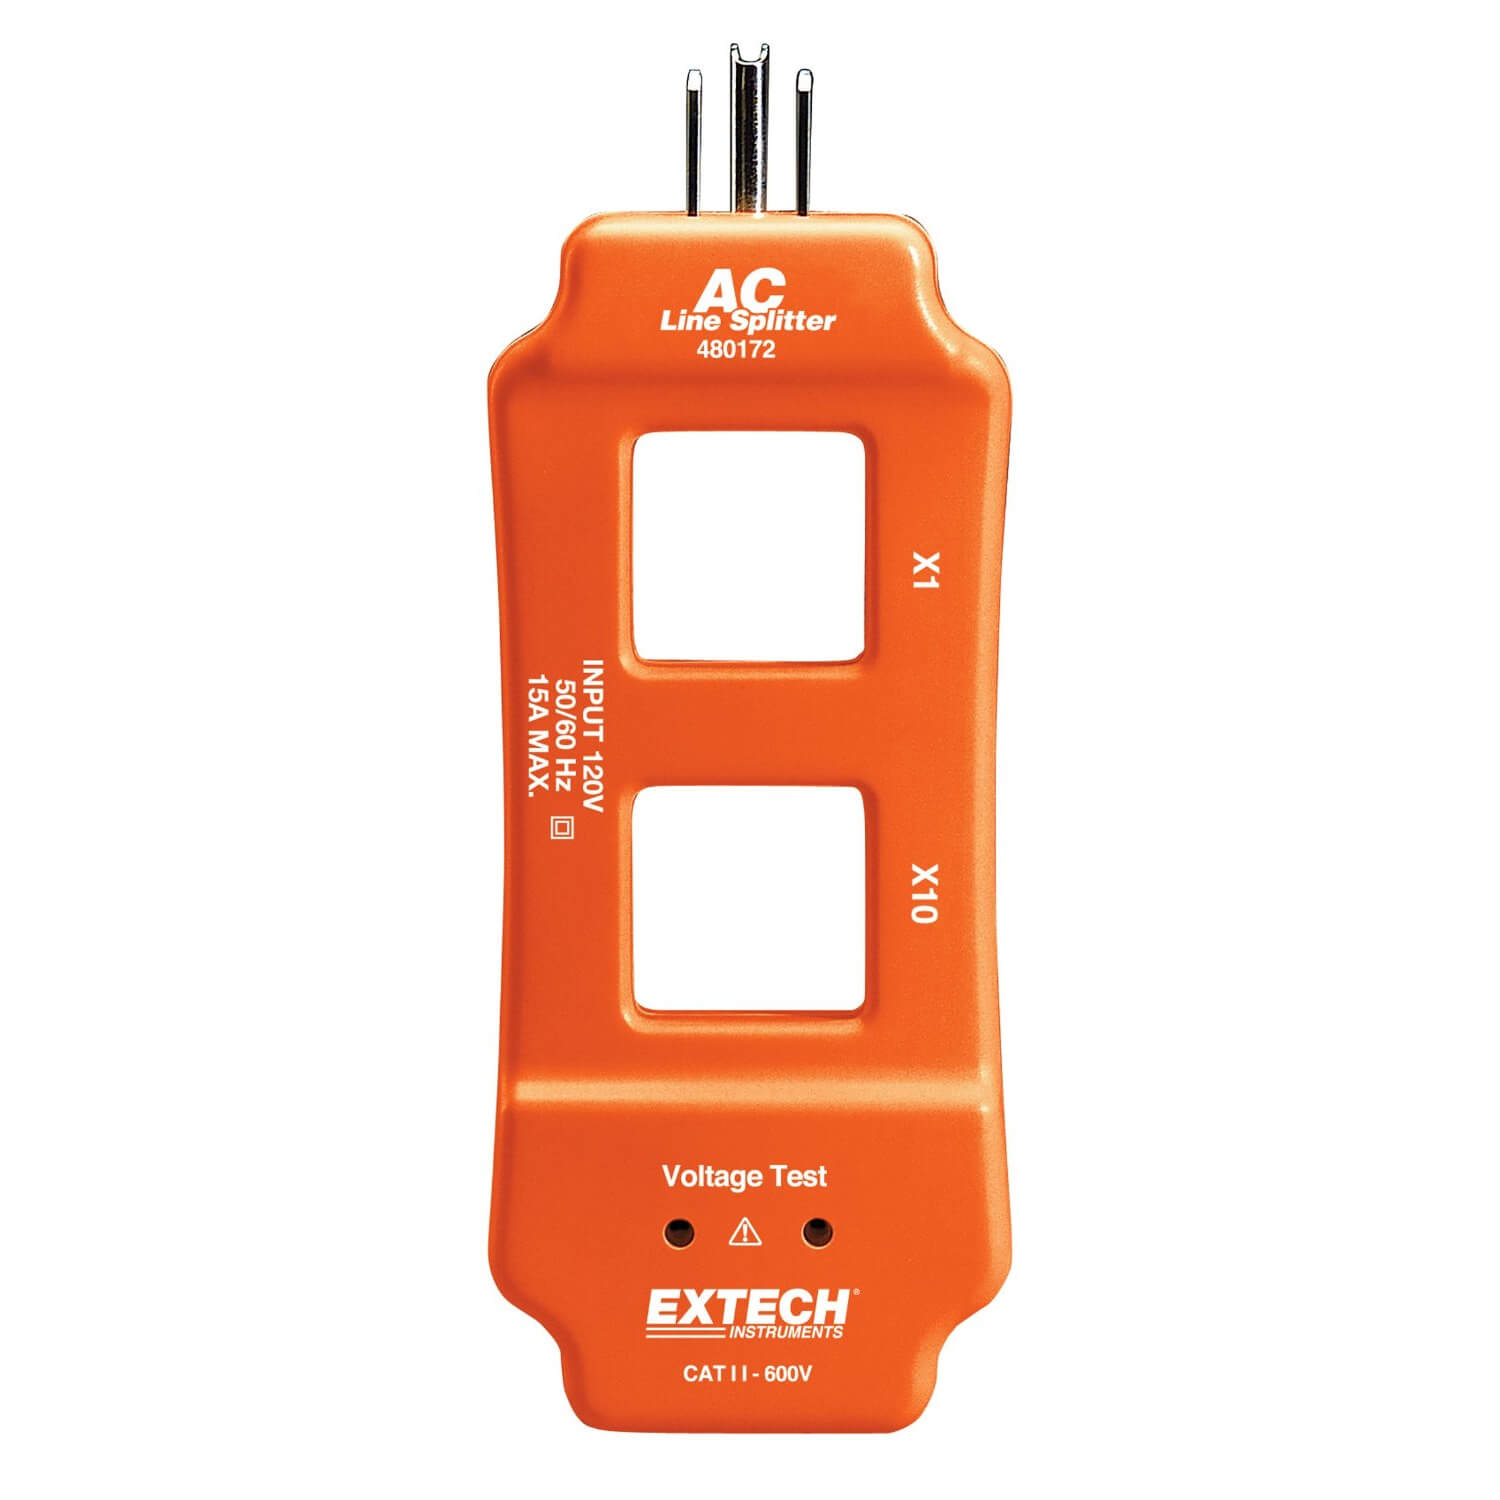 The Best Hvac Clamp Meter : Extech ac line splitter for clamp meters